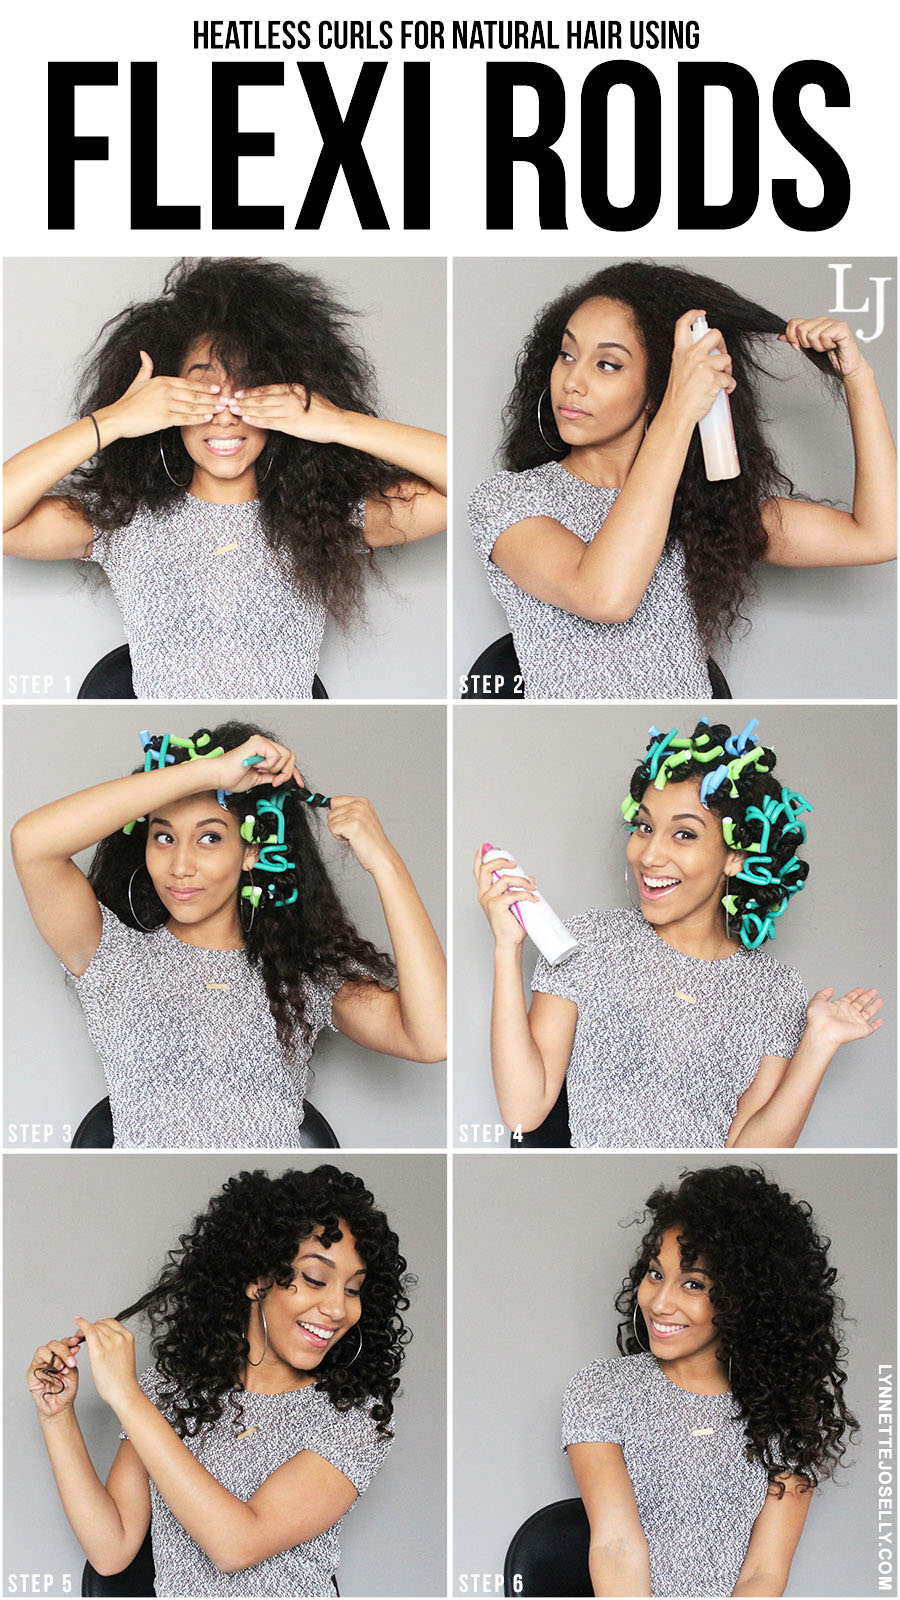 Lynnette Joselly Heatless Curls For Natural Hair Using